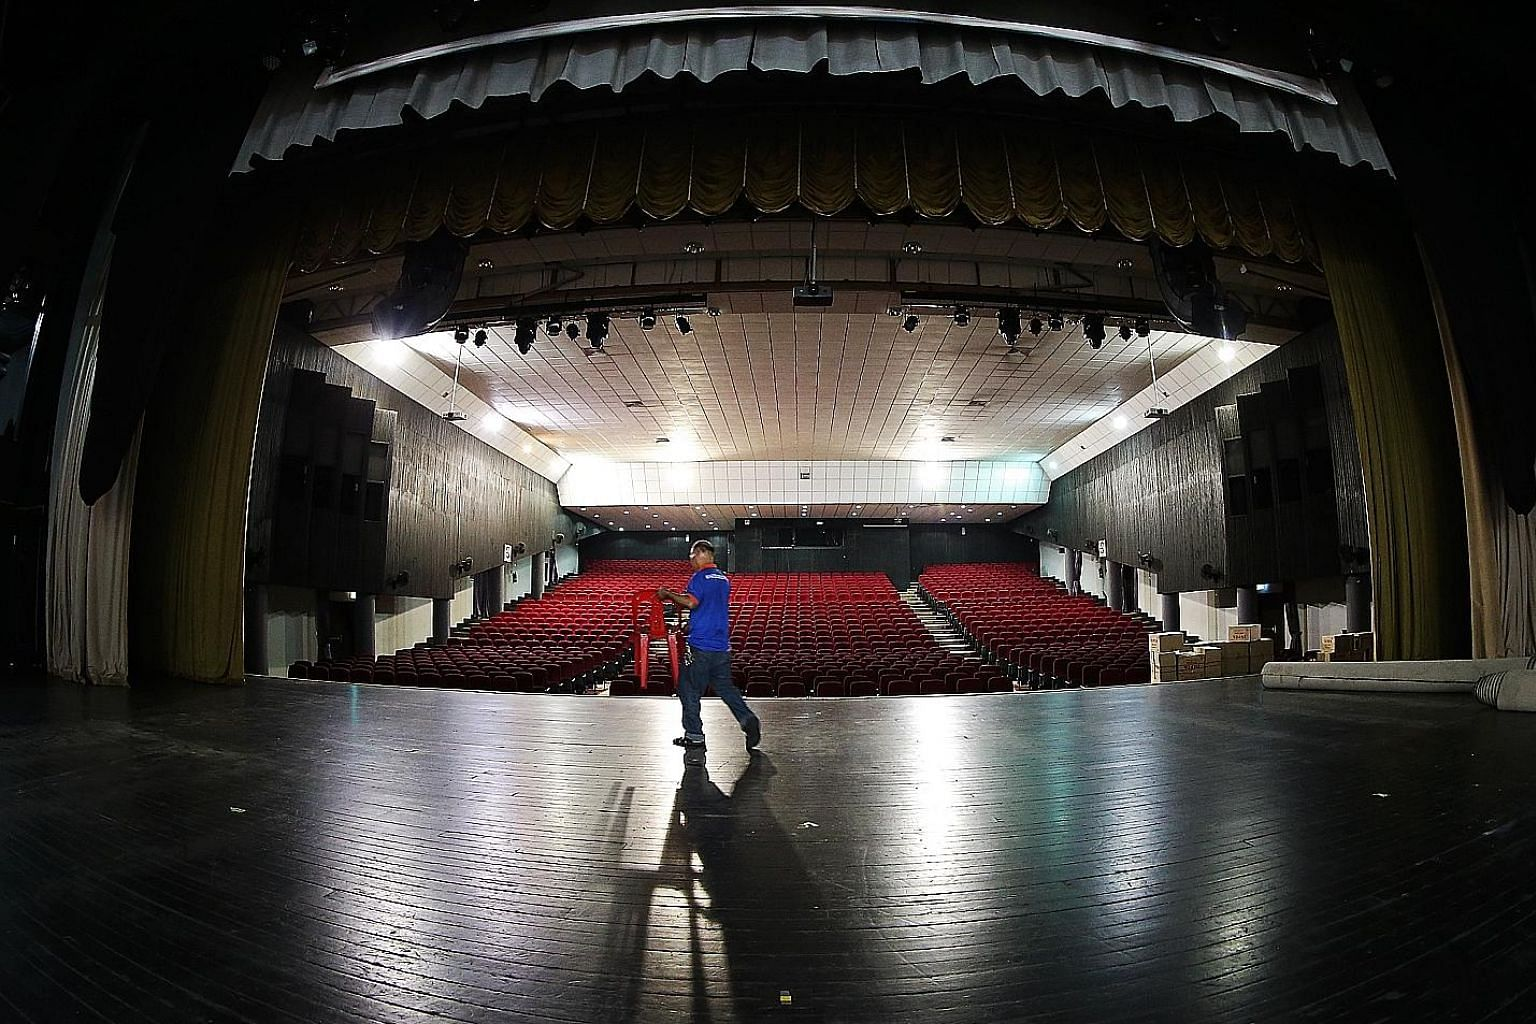 Kreta Ayer People's Theatre building is now managed by People's Association, giving it access to much-needed funds for a renovation.